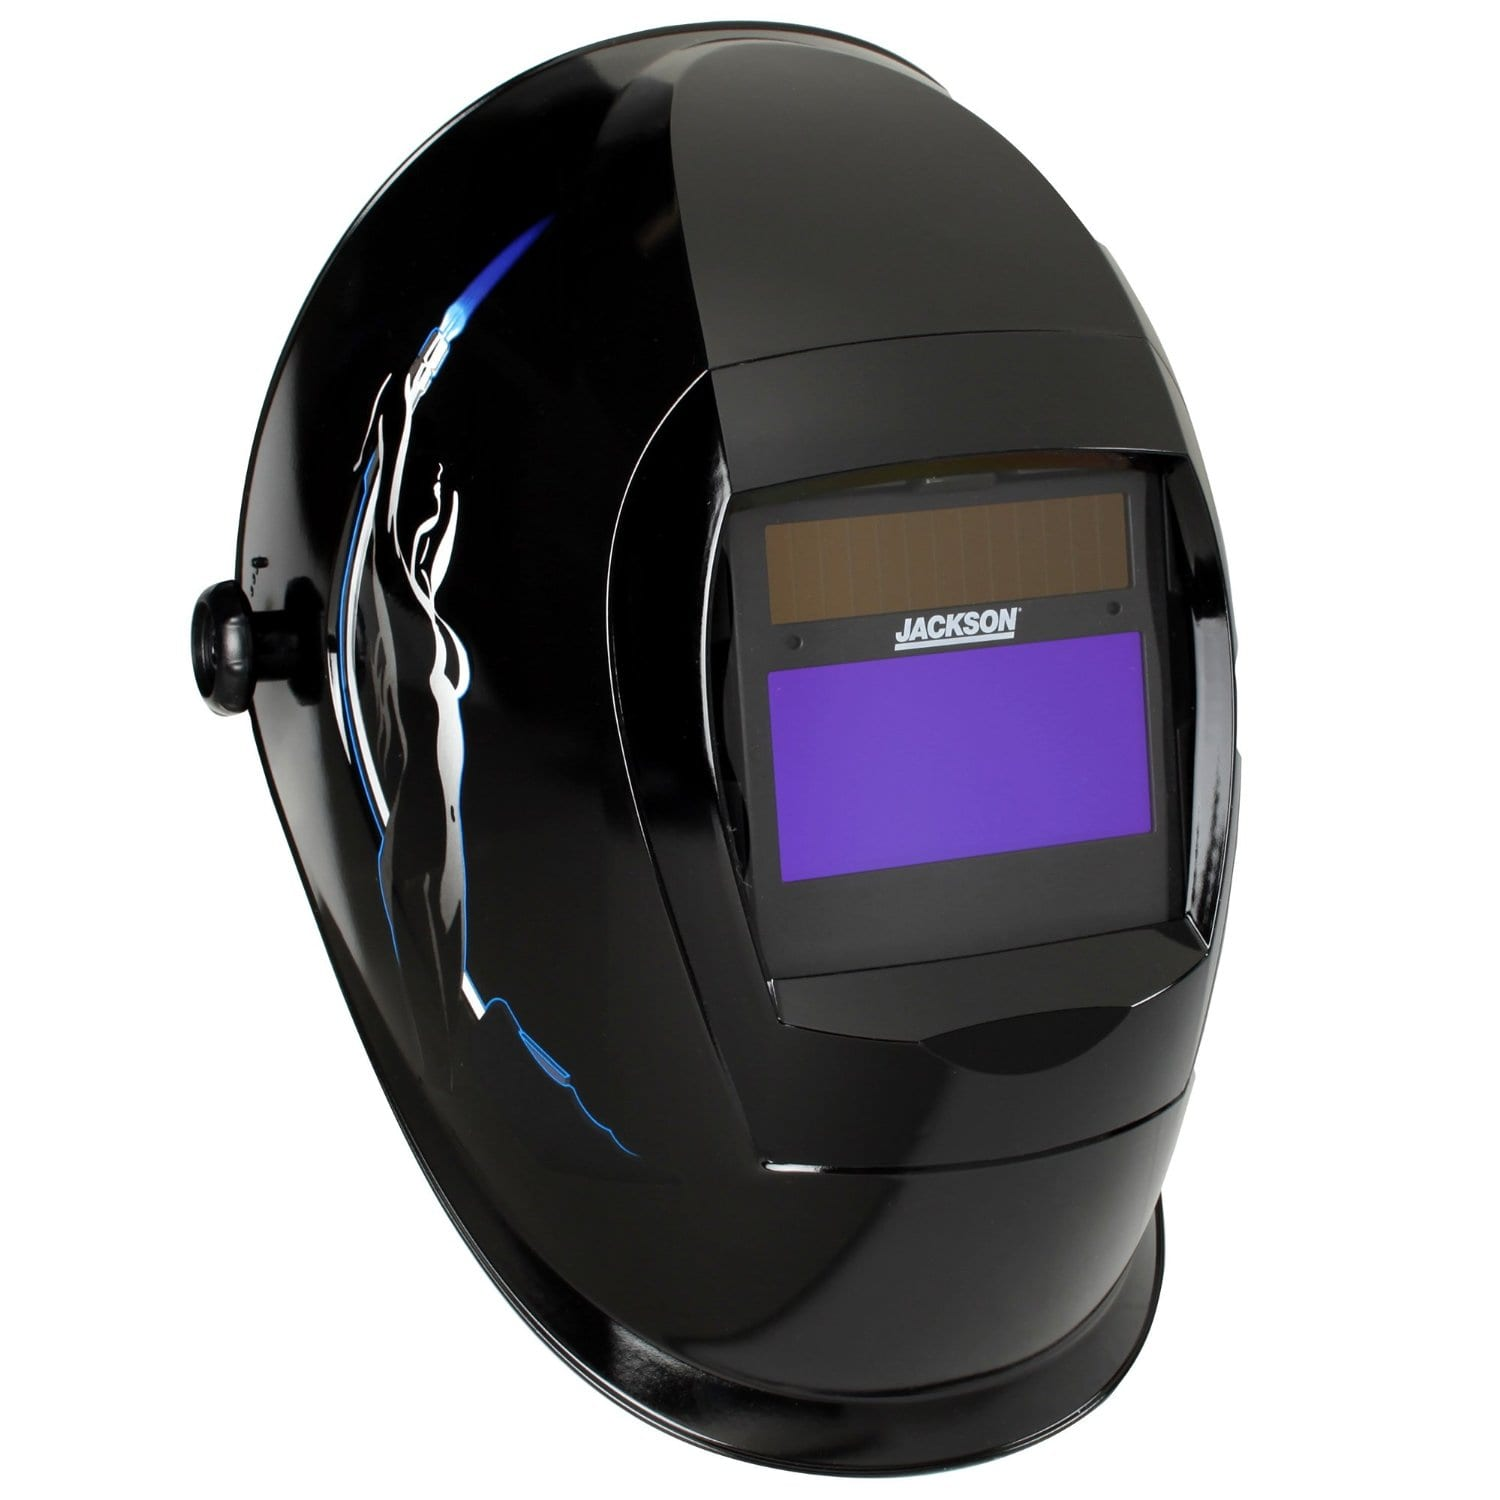 Jackson Safety WH40 SmarTIGer Auto-Darkening Welding Helmet review